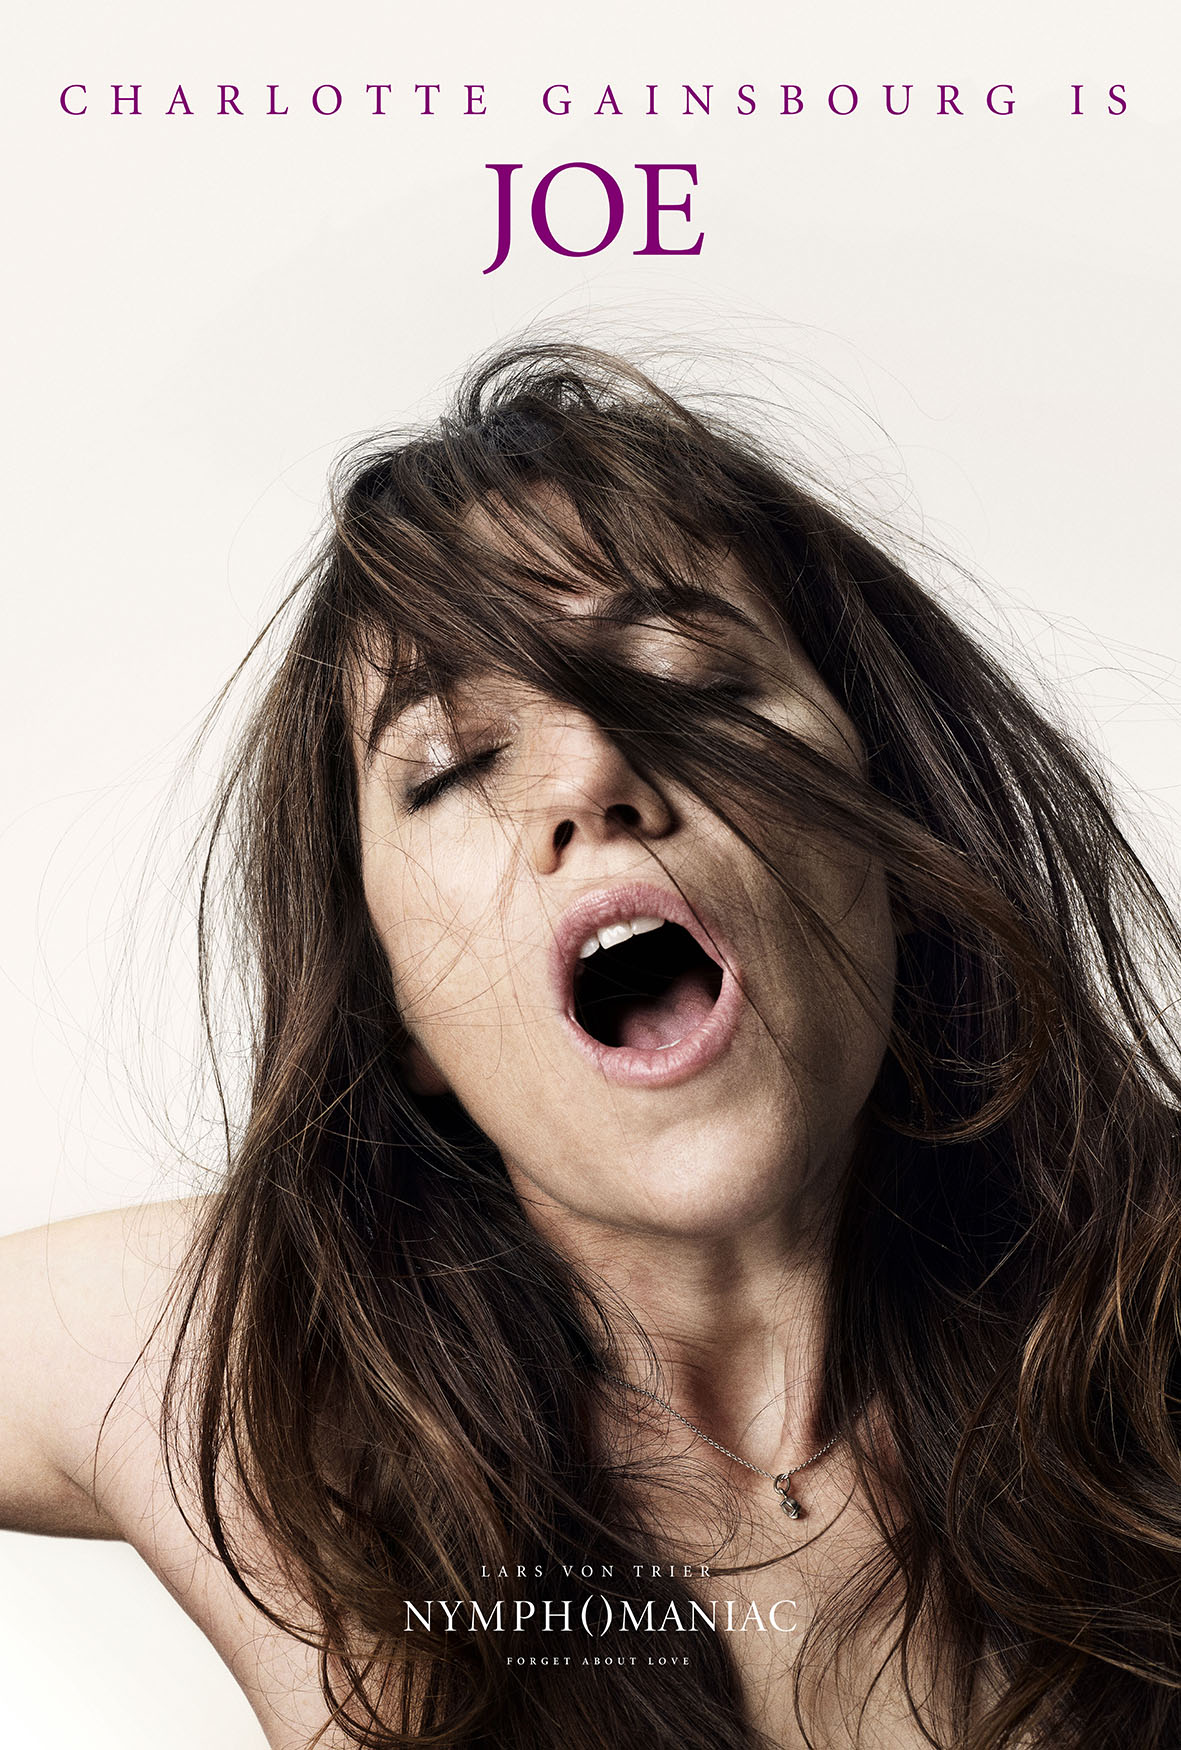 nymphomaniac-poster-charlotte-gainsbourg